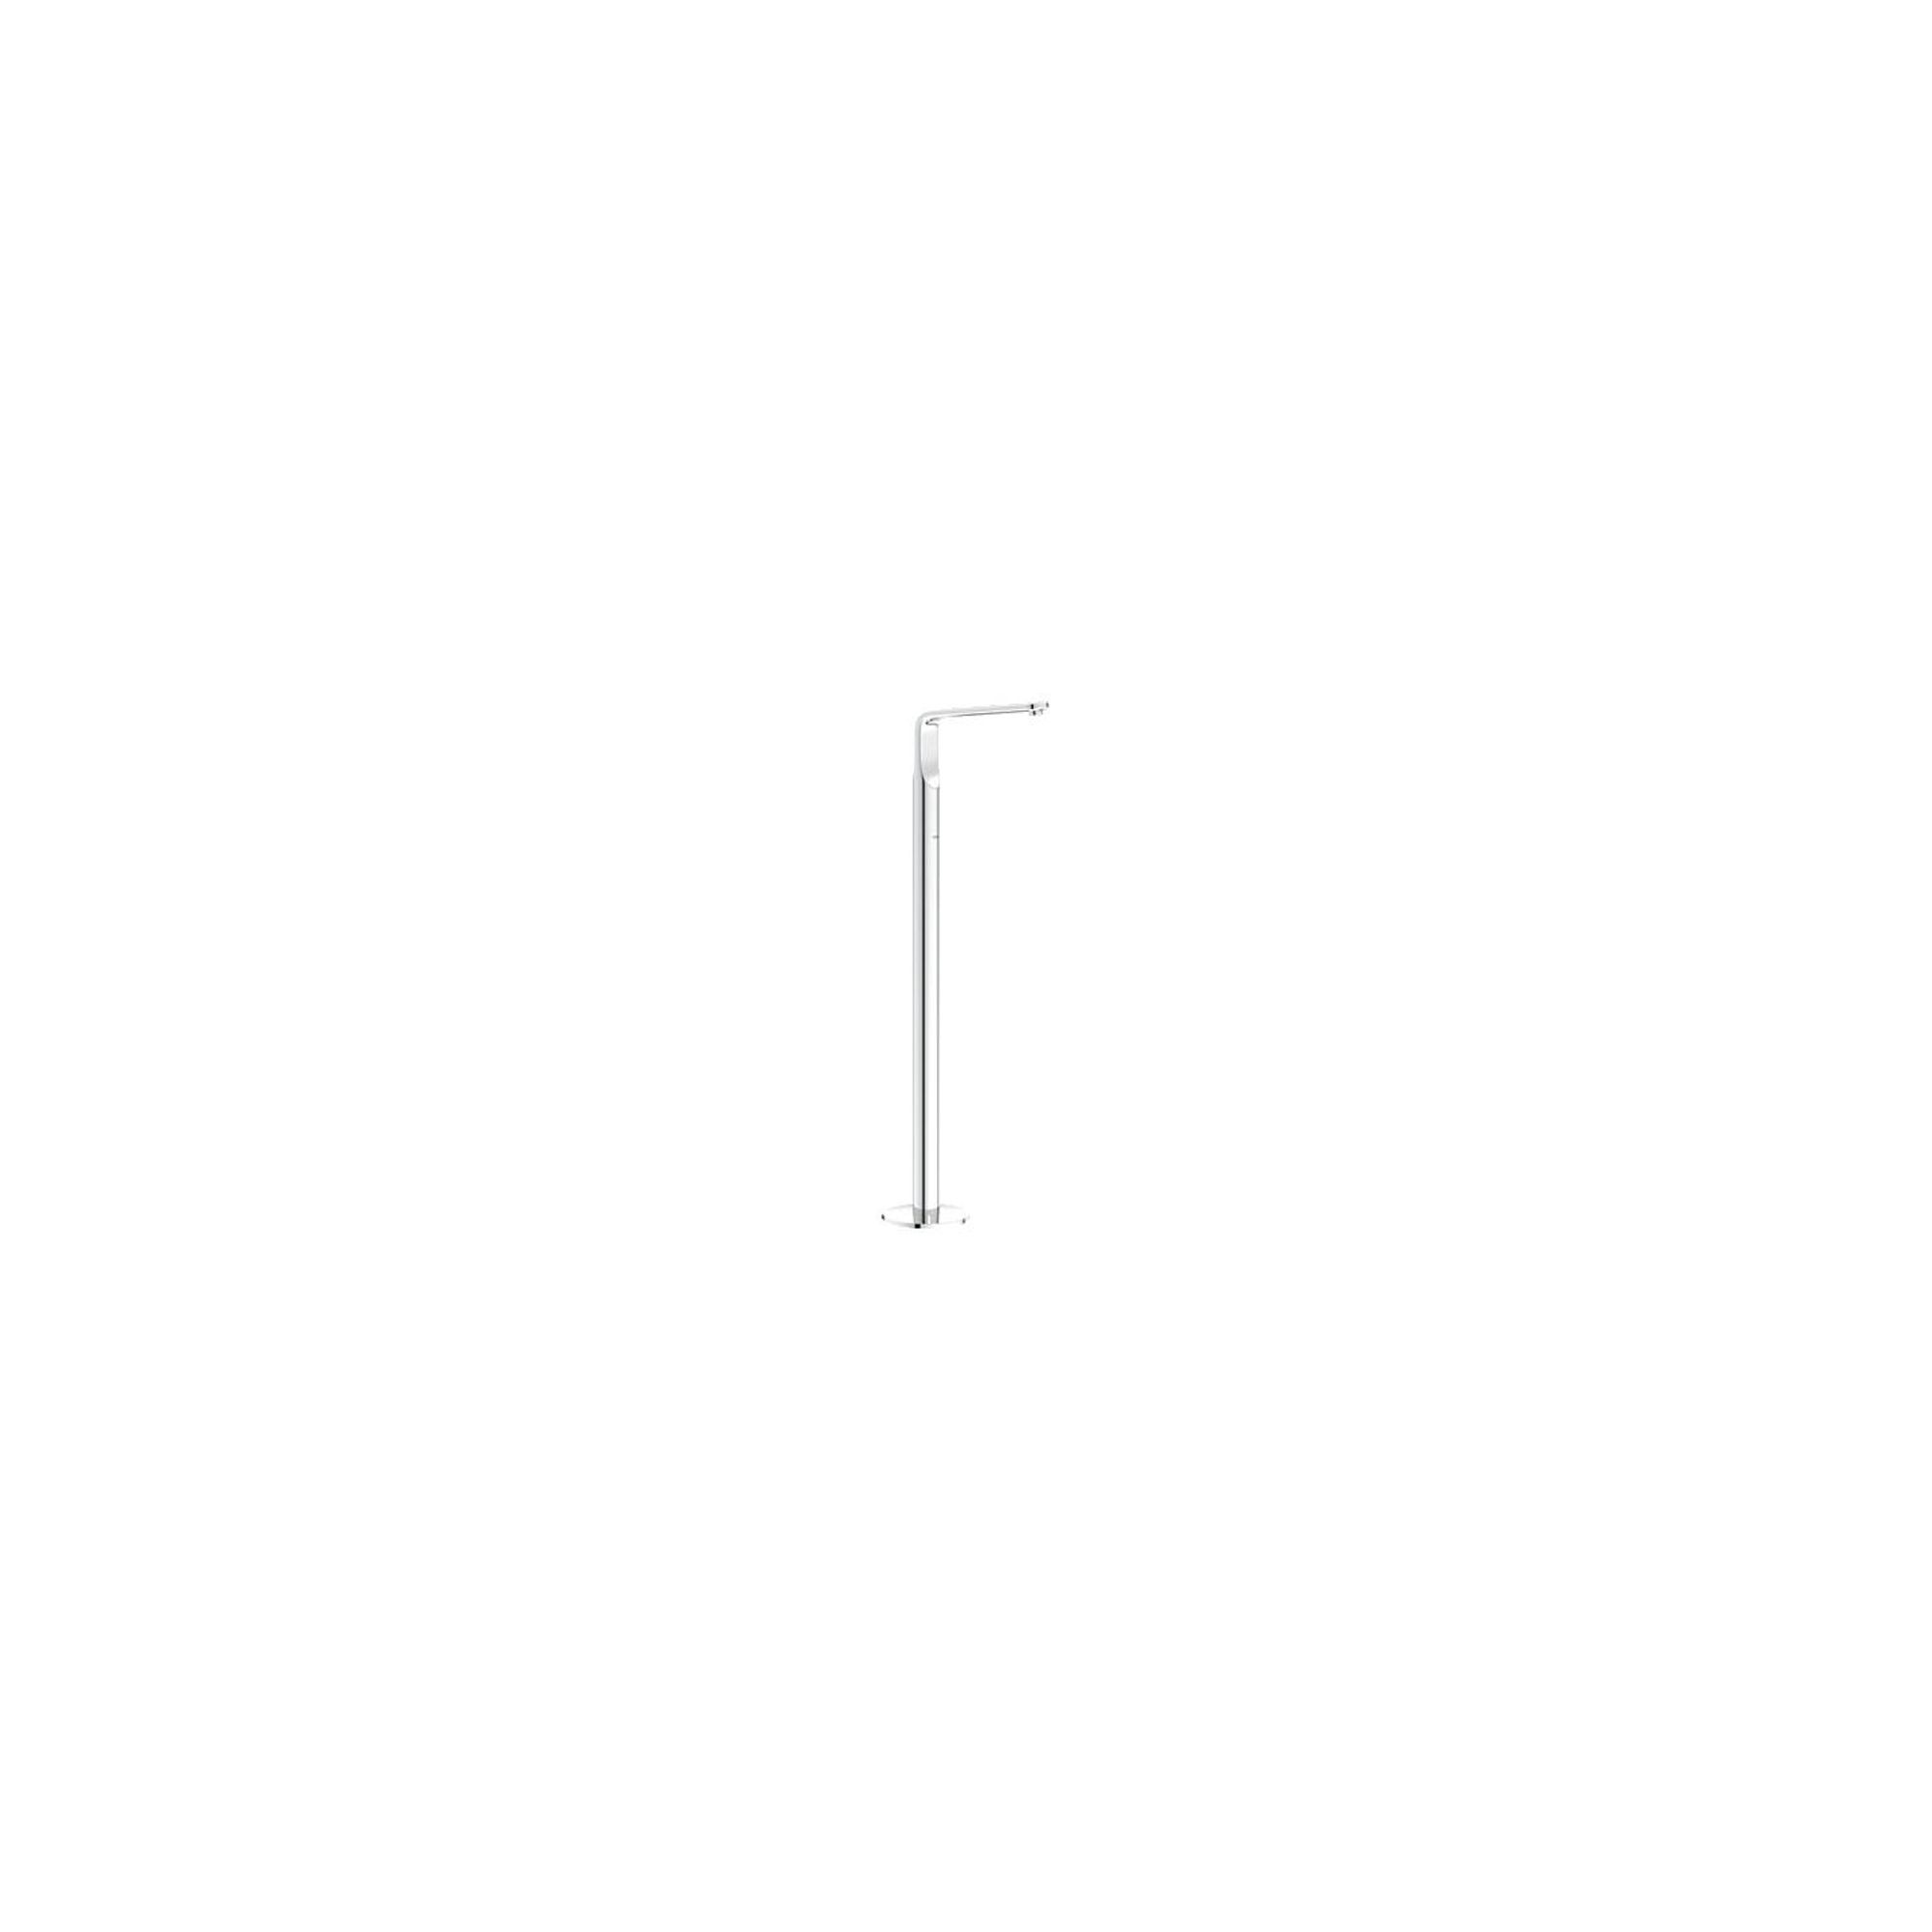 Grohe Ondus Veris Mono Bath Filler Tap, Floor Standing, Chrome at Tesco Direct